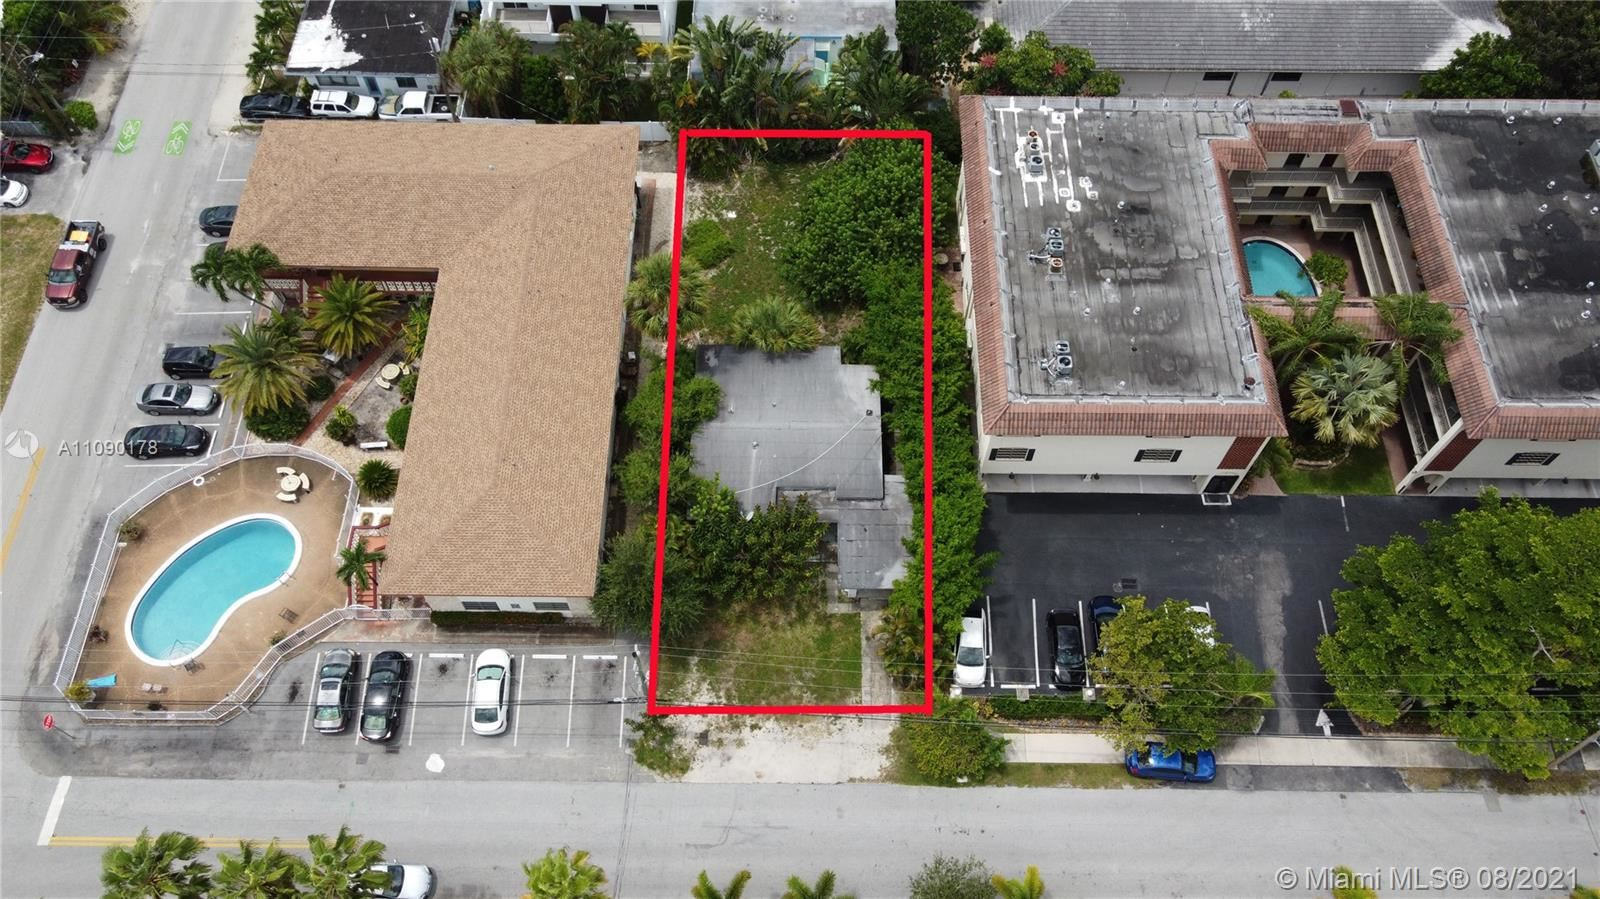 Photo of 907 NE 16th Ave, Fort Lauderdale, FL 33304 (MLS # A11090178)